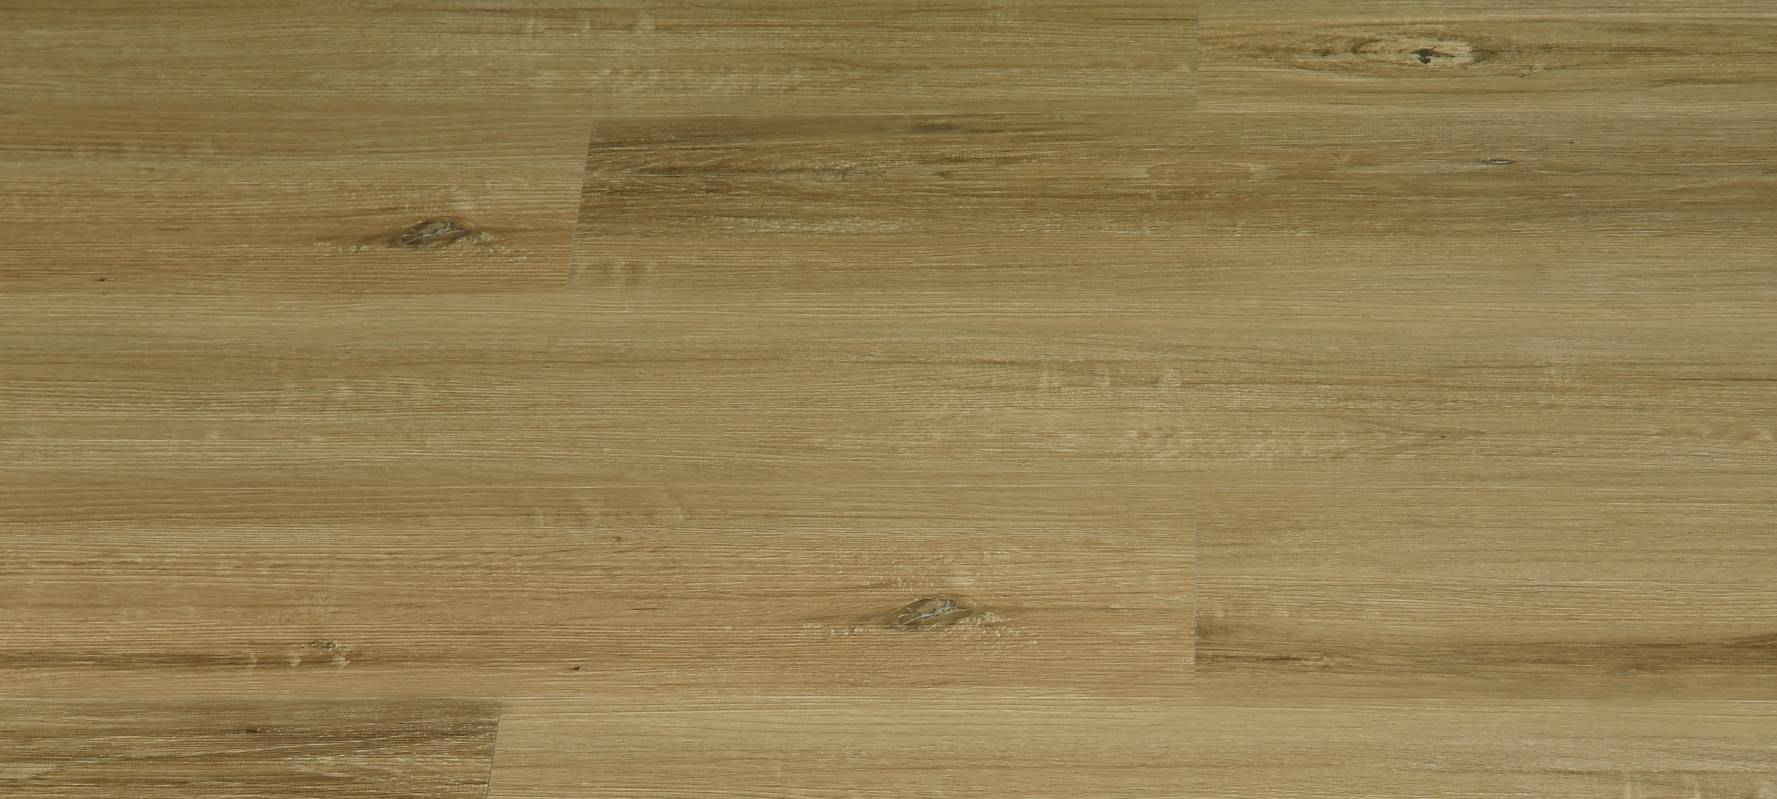 Unideco Luxury Vinyl Tile 6063